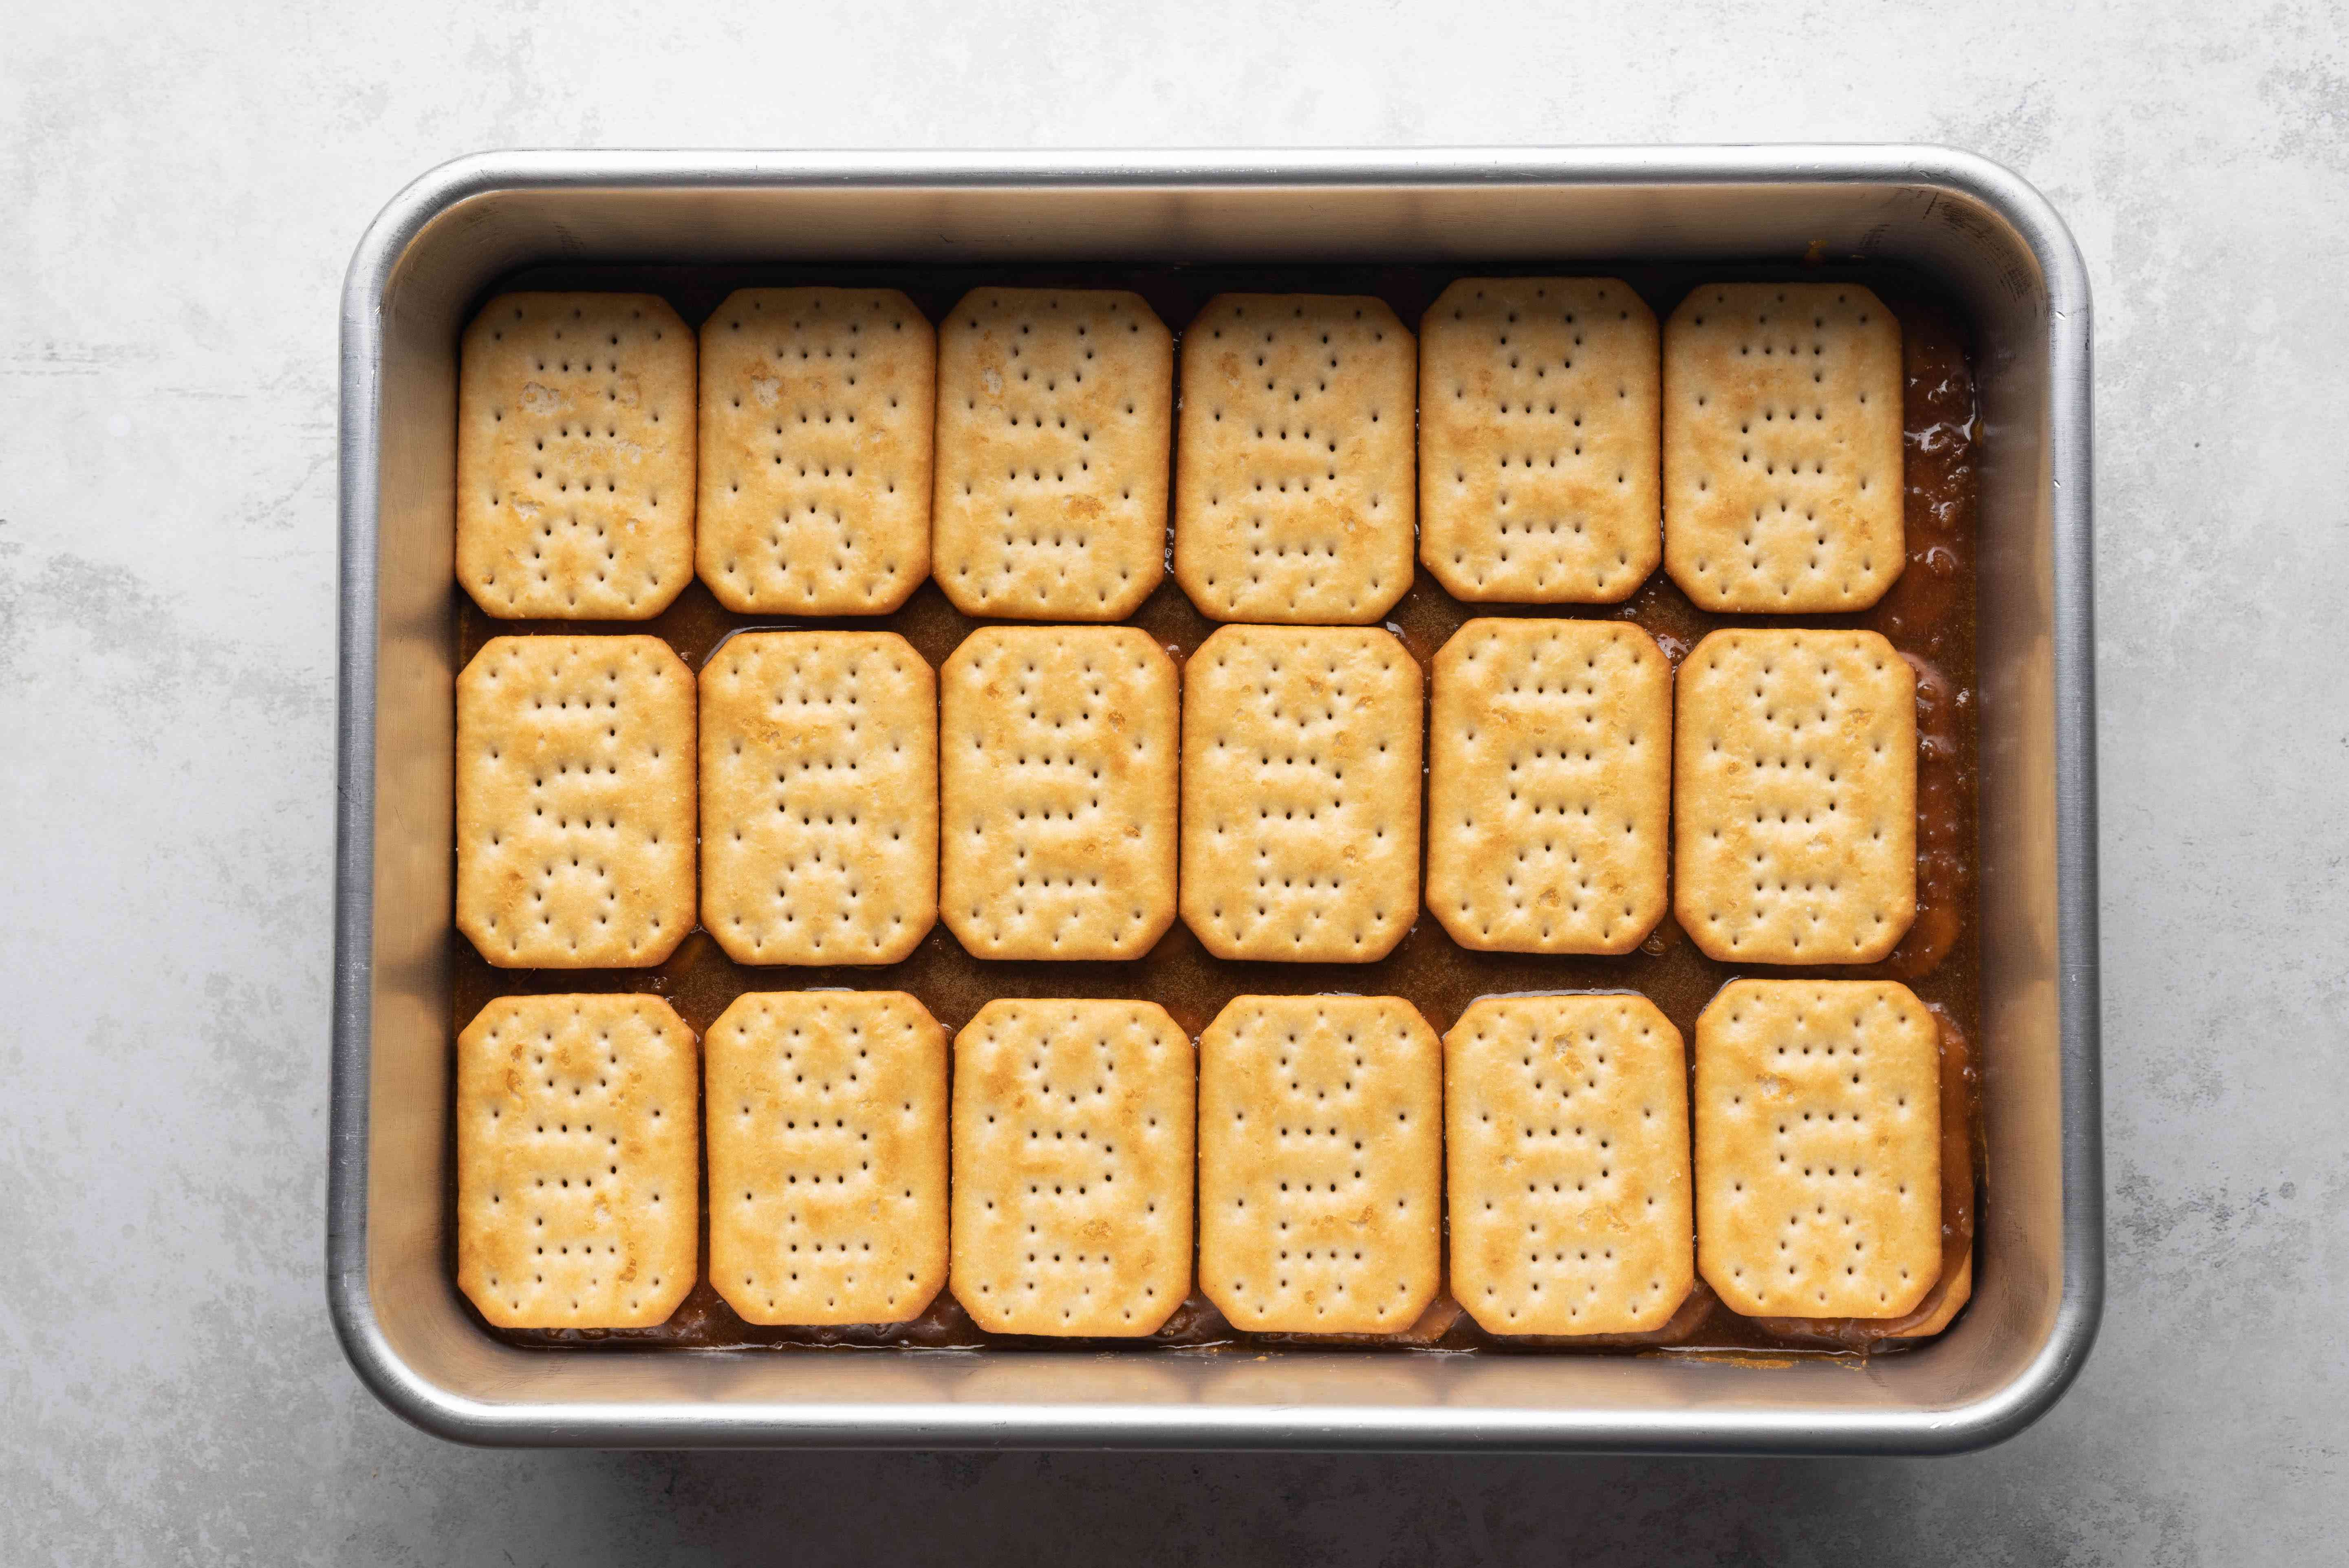 crackers on top of the sugar mixture in the baking dish